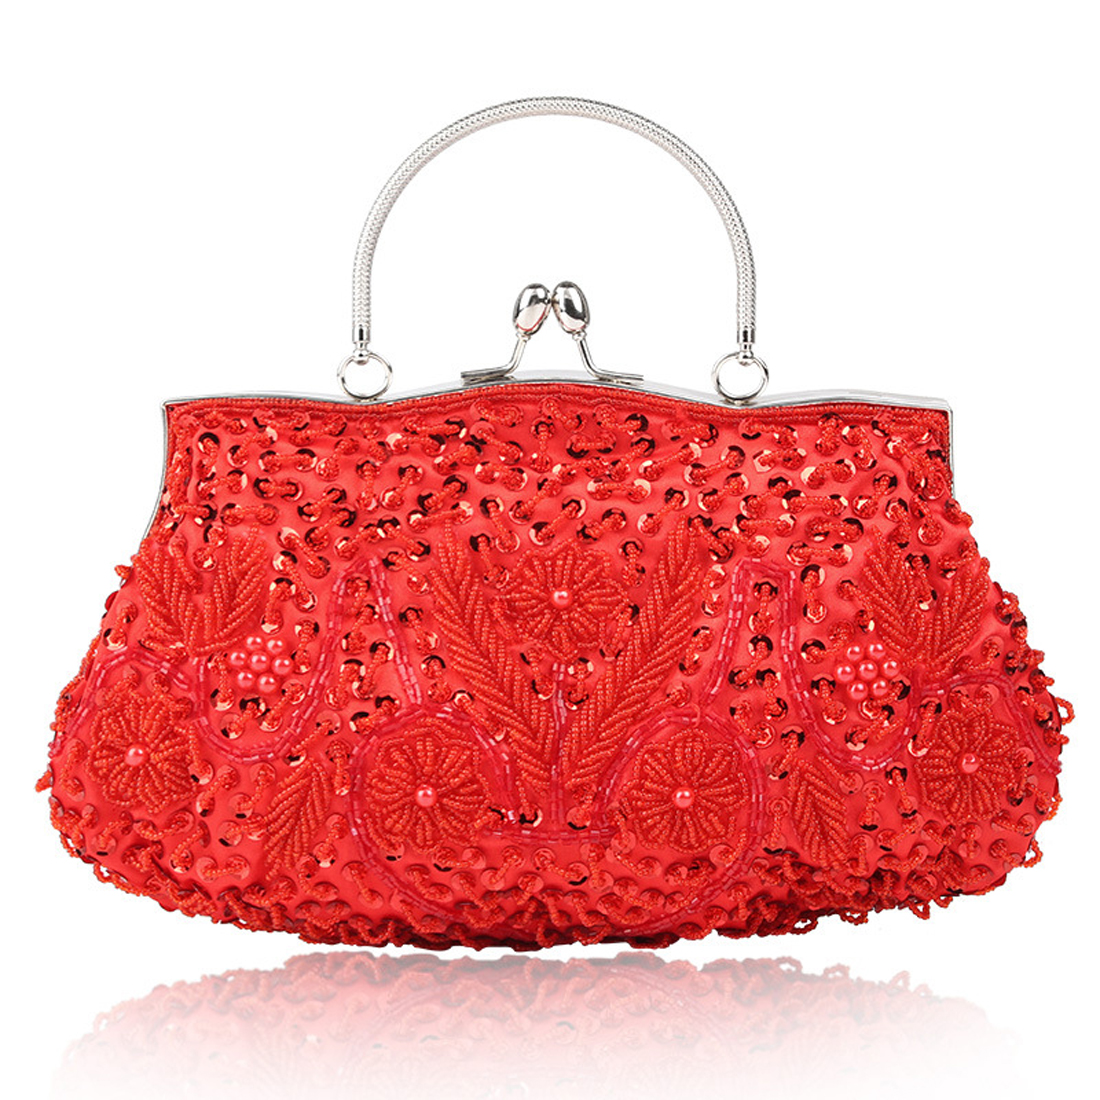 Vintage Floral beaded women Handbags Women Day Clutch bride Rhinestone Evening shoulder Bags for Wedding Party Clutches Purses<br>